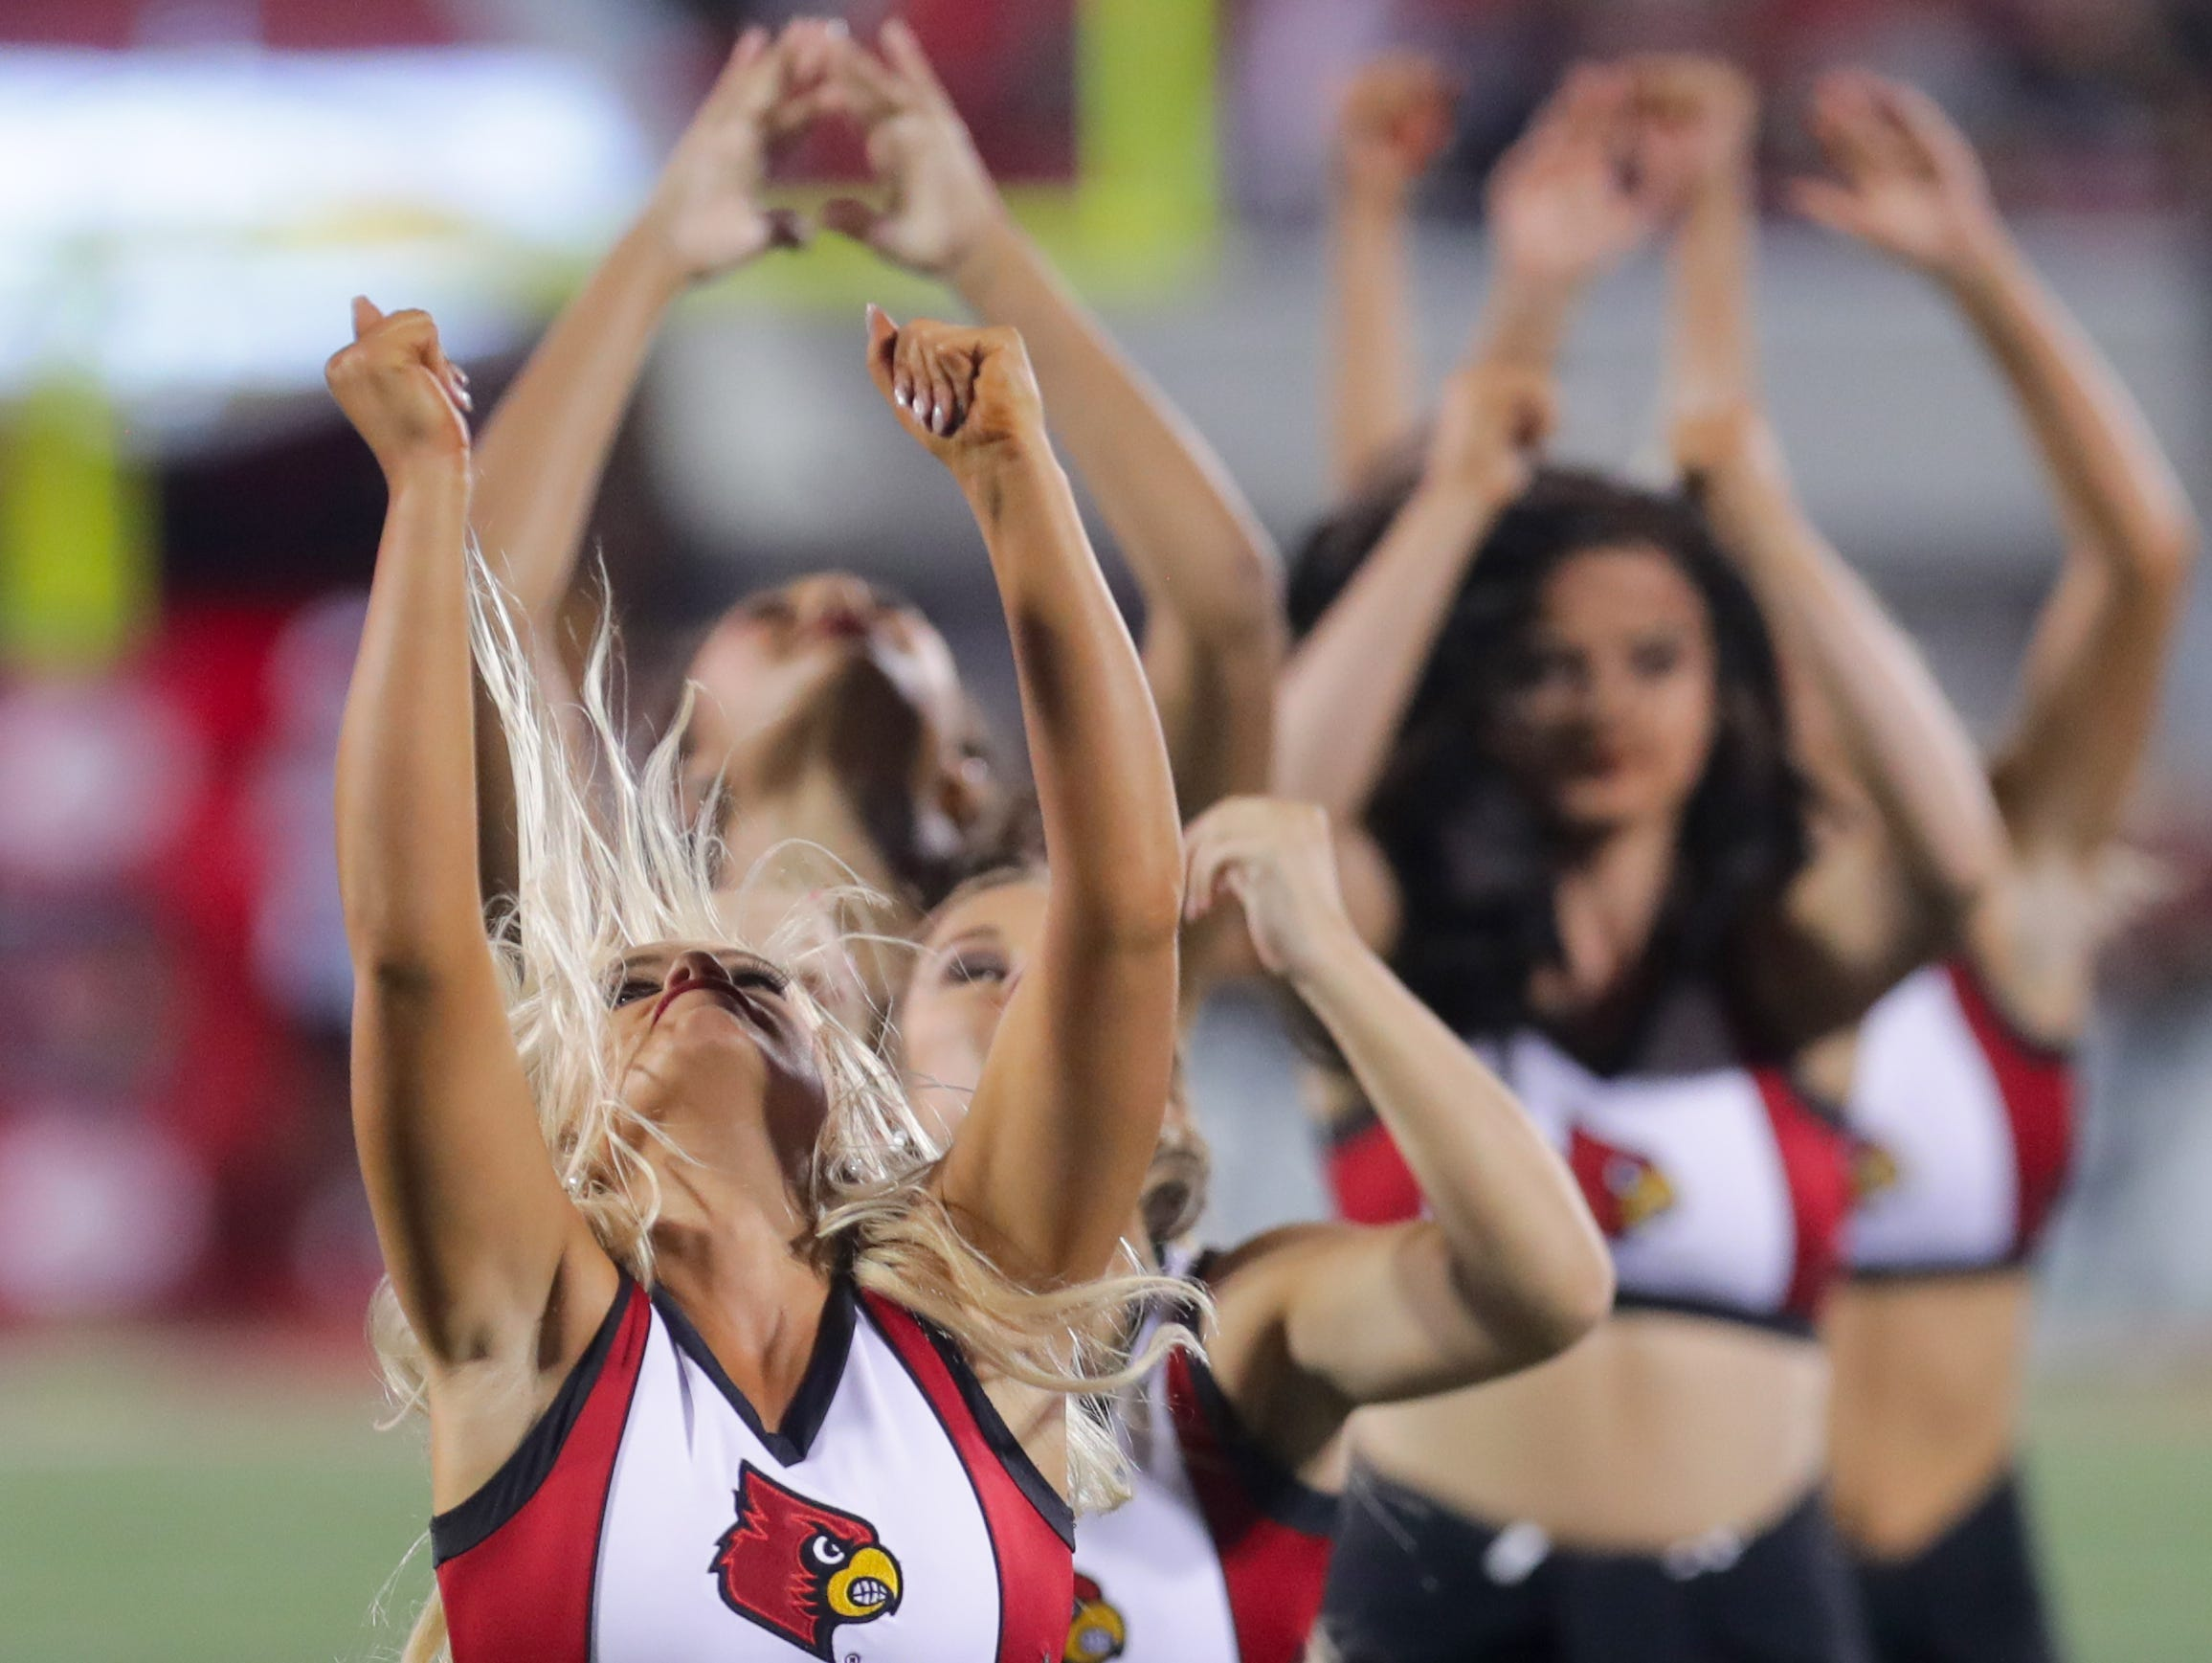 The Louisville Ladybirds entertain the crowd during a performance in the 3rd quarter. 